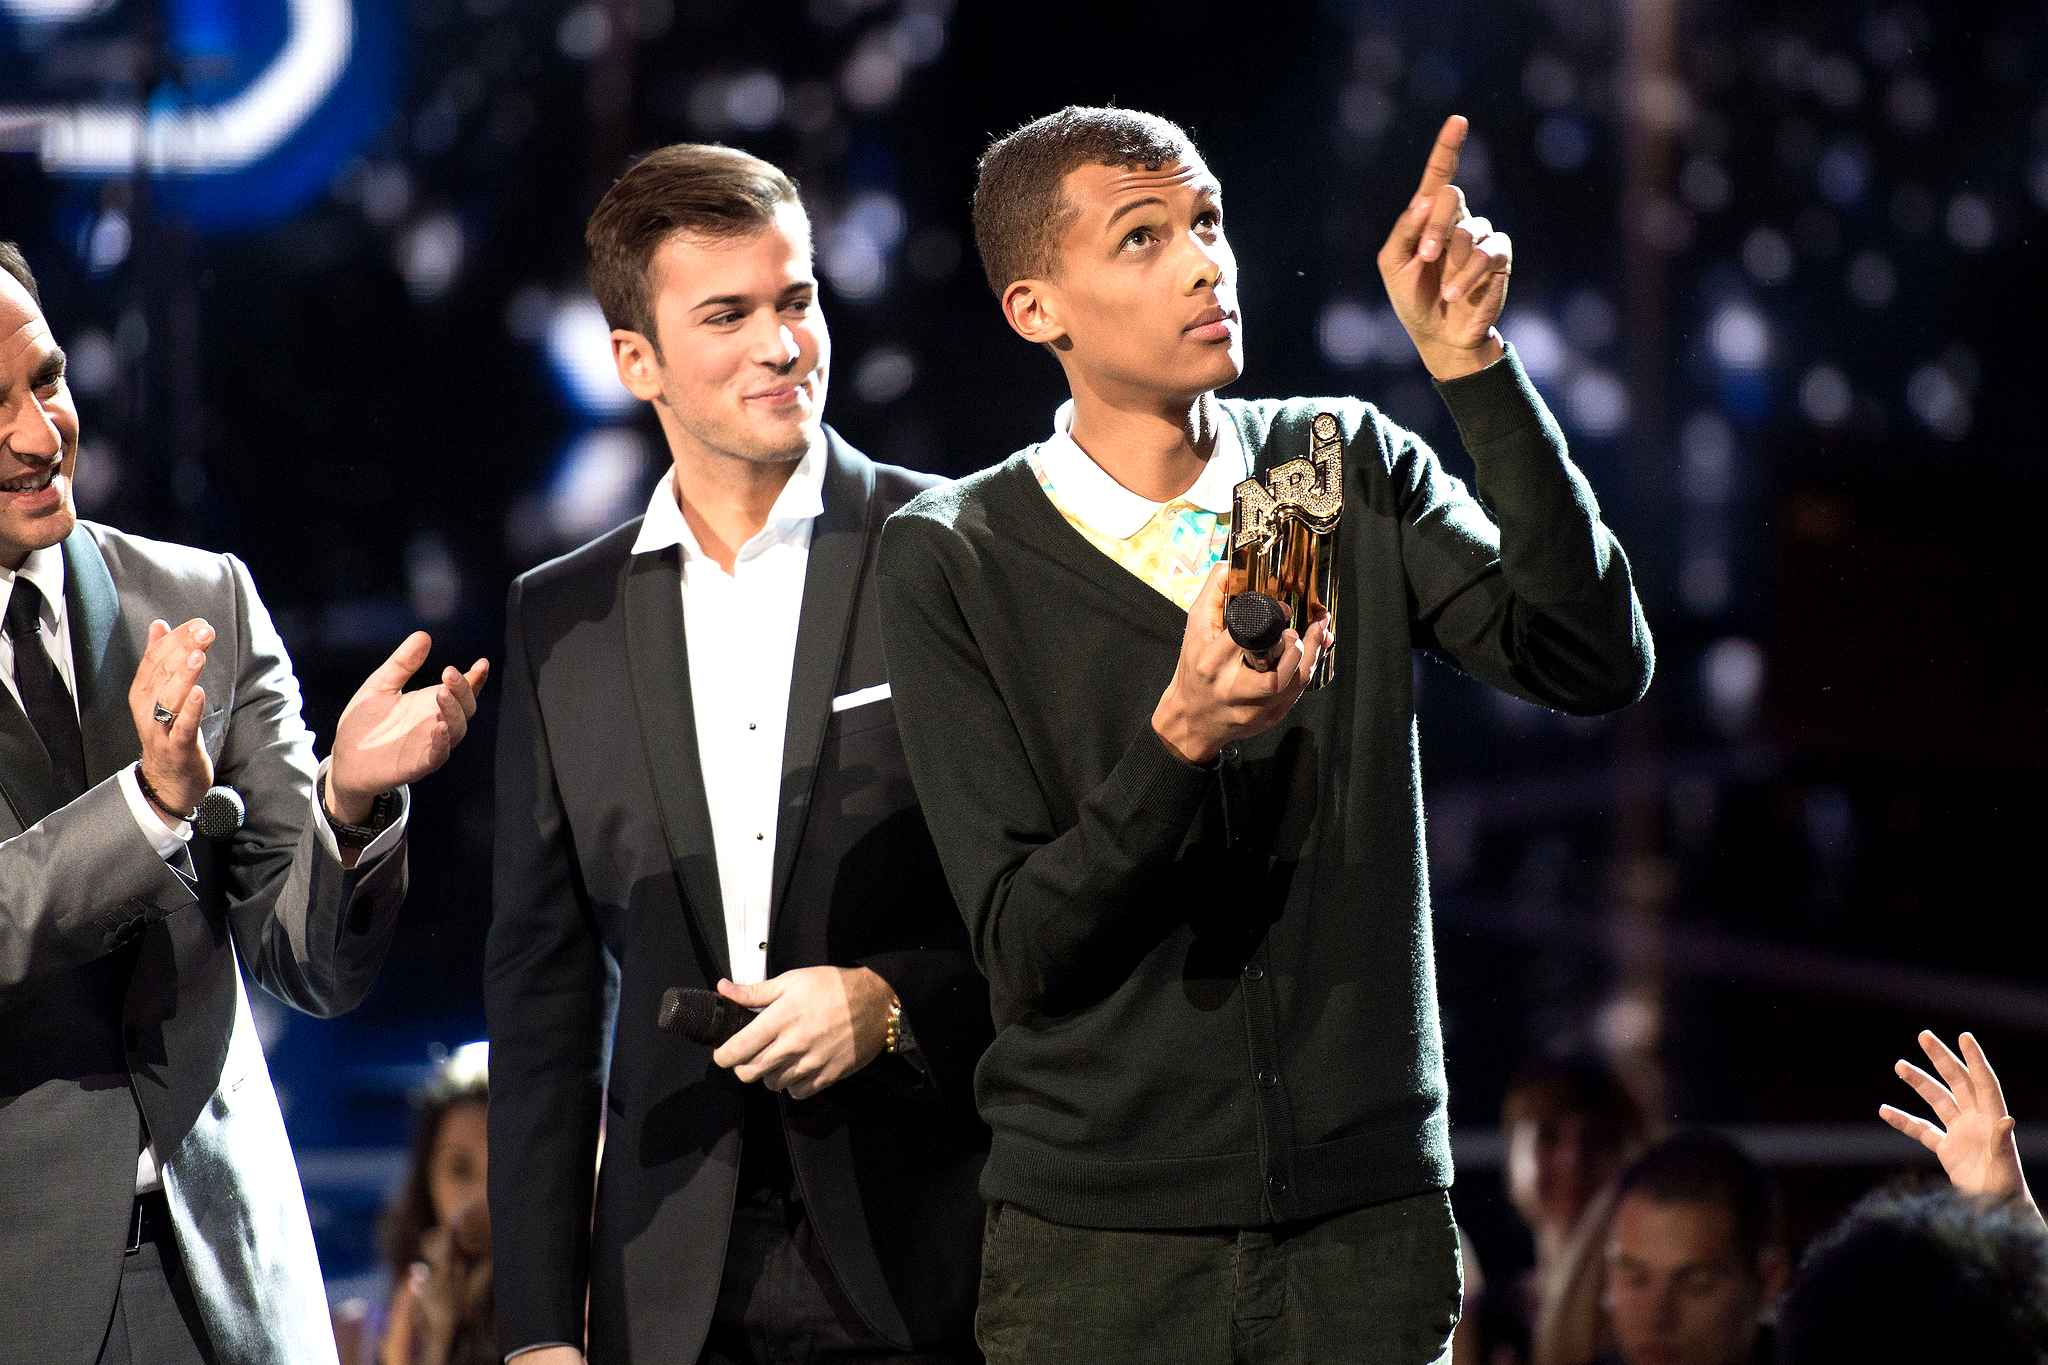 stromae nrj music awards 2014